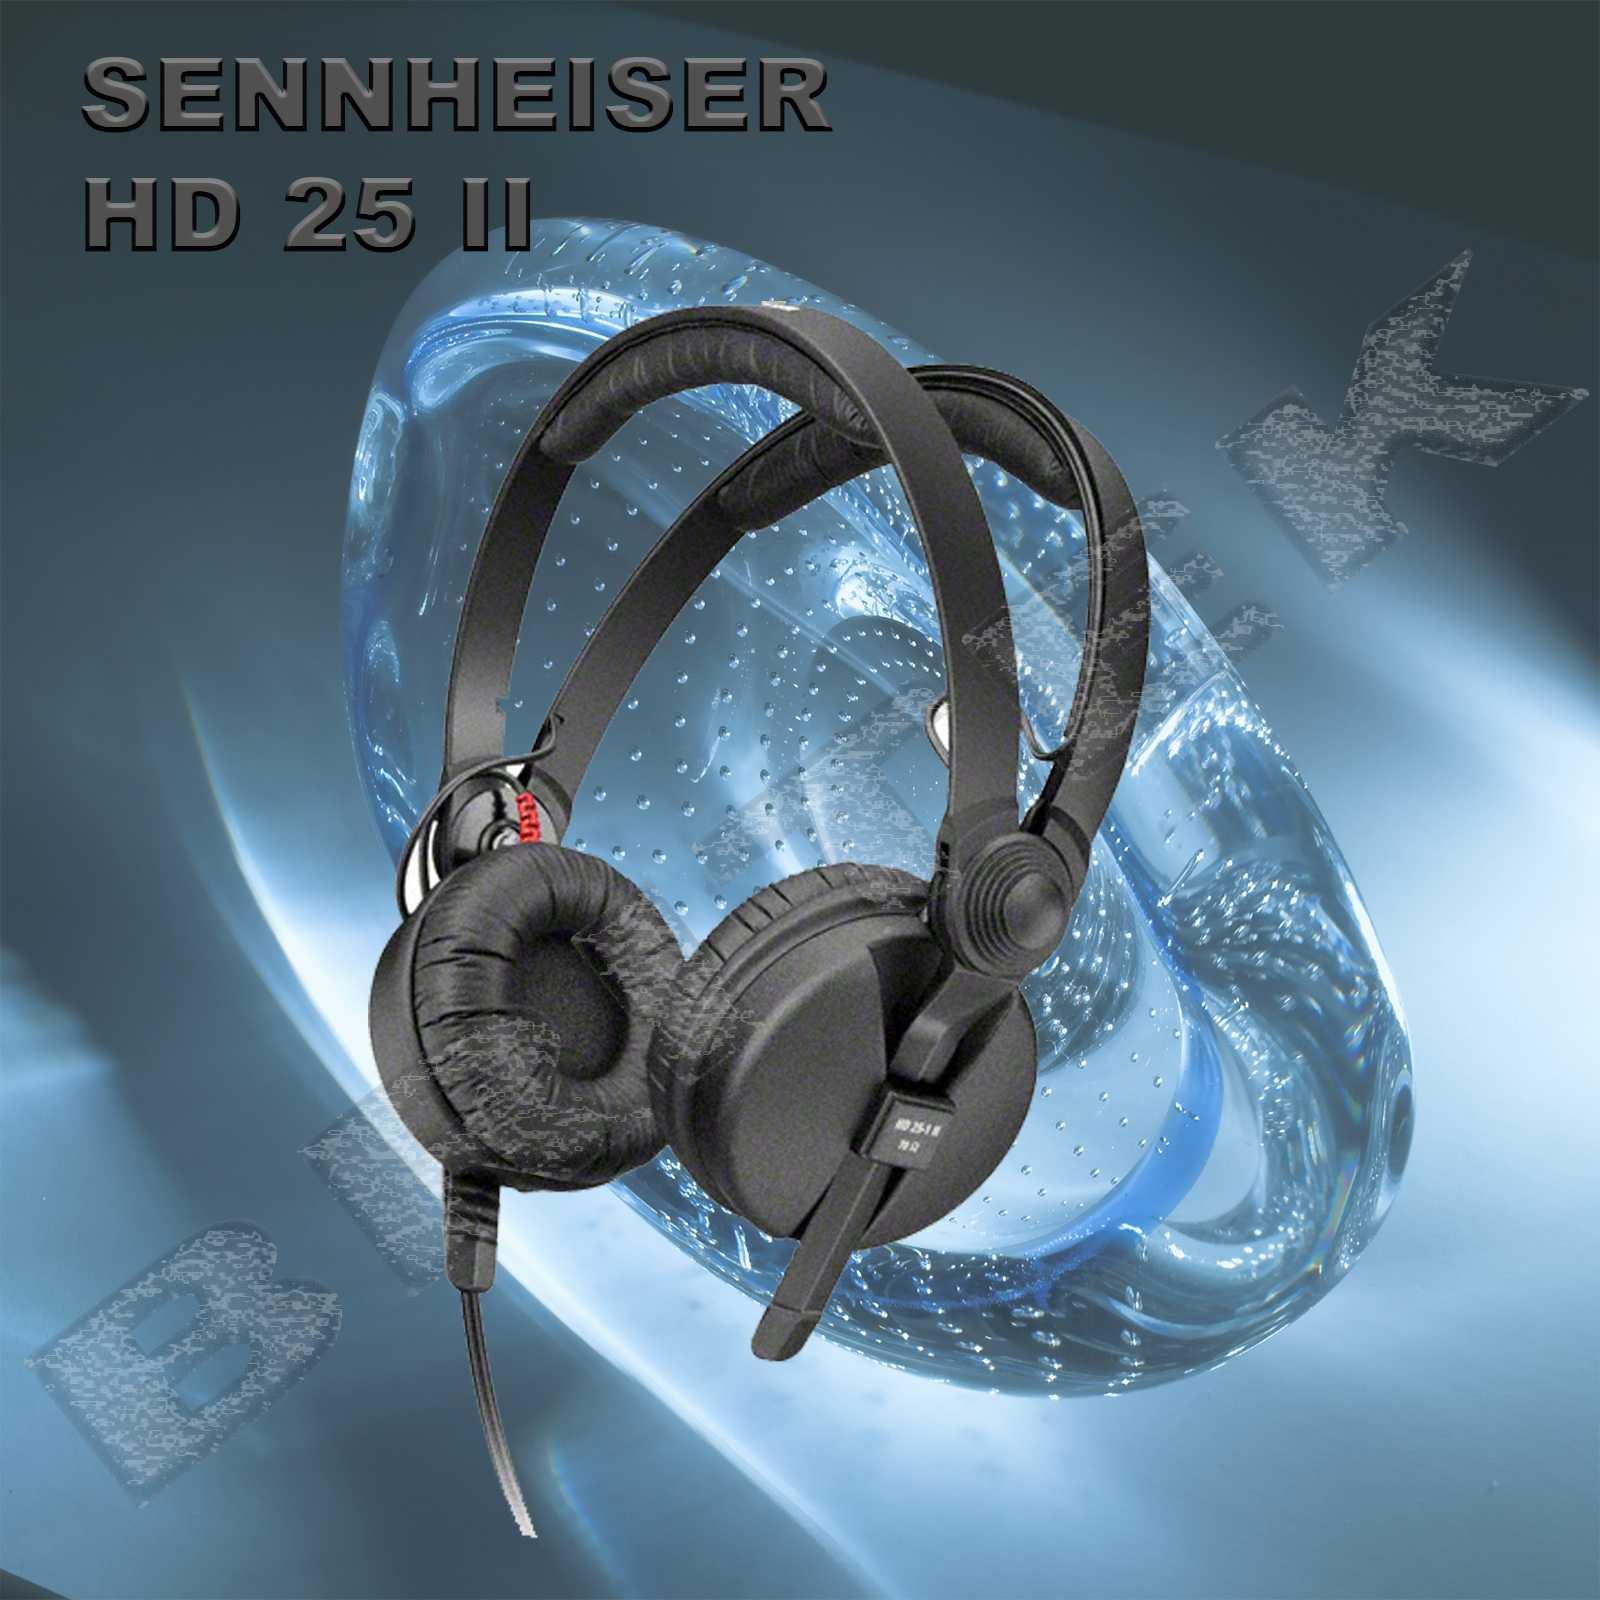 SENNHEISER HD 25 SP